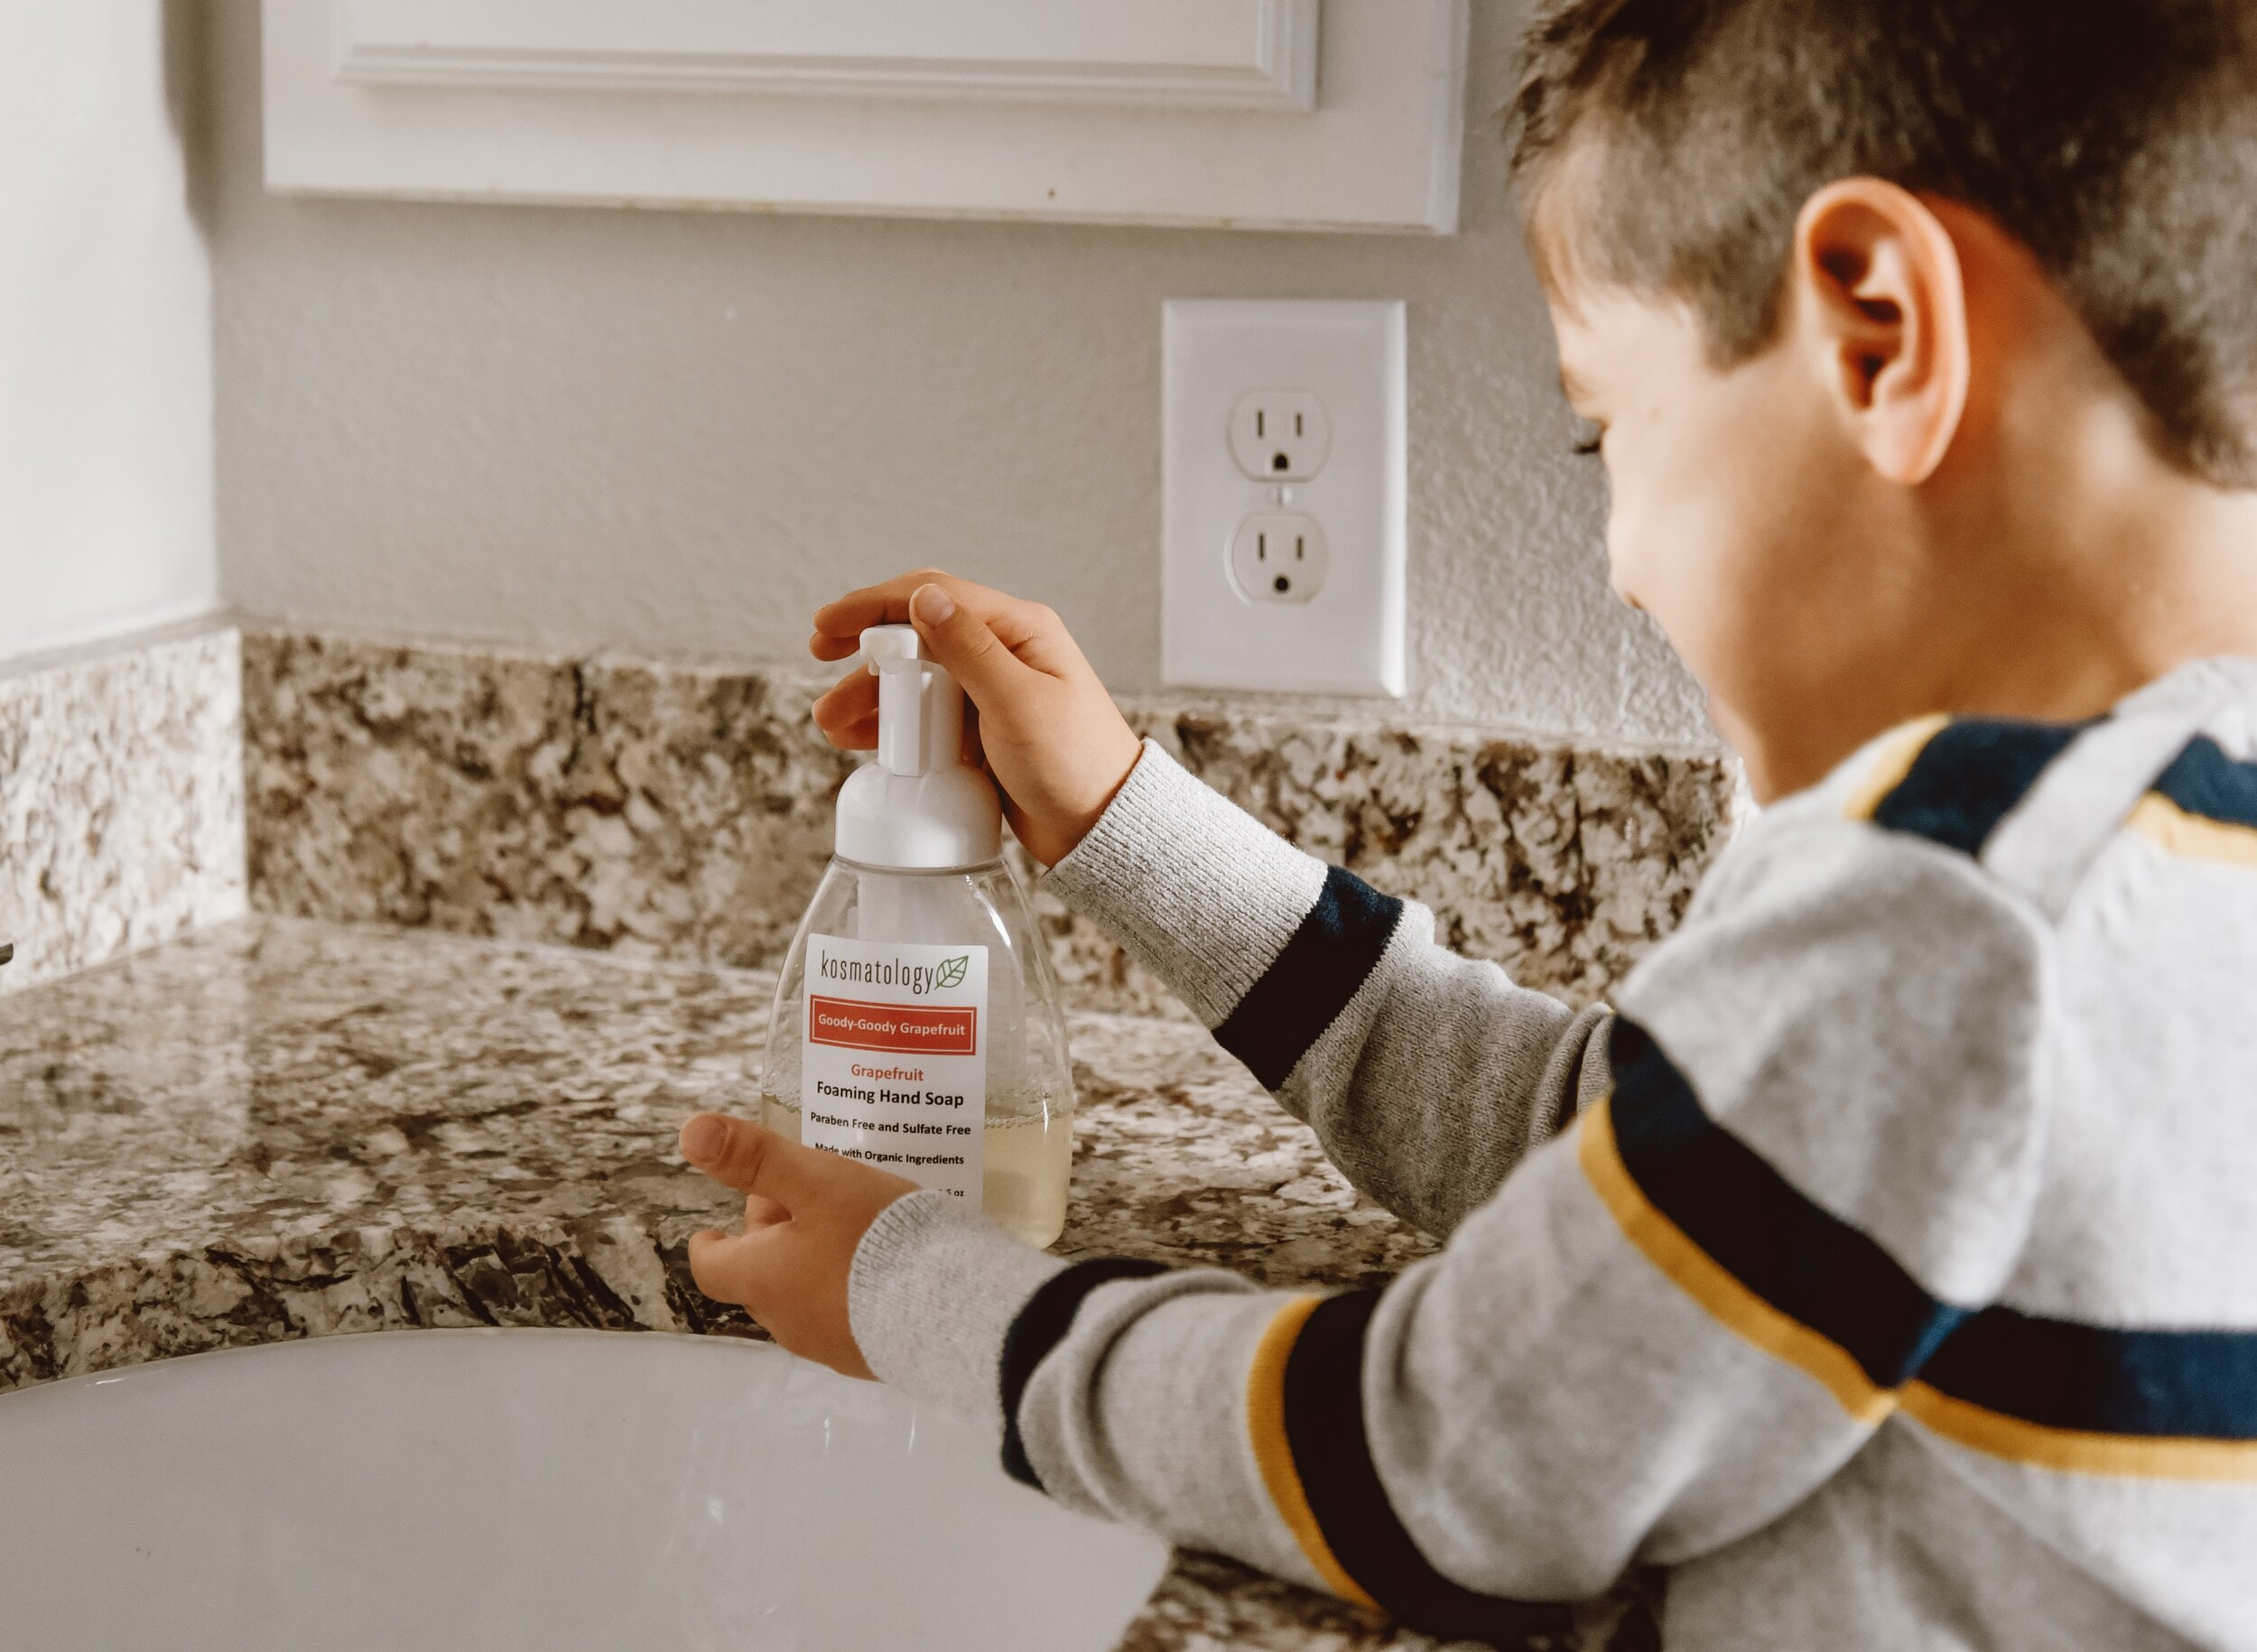 Young boy in bathroom using Goody Goody Grapefruit Foaming Hand Soap.